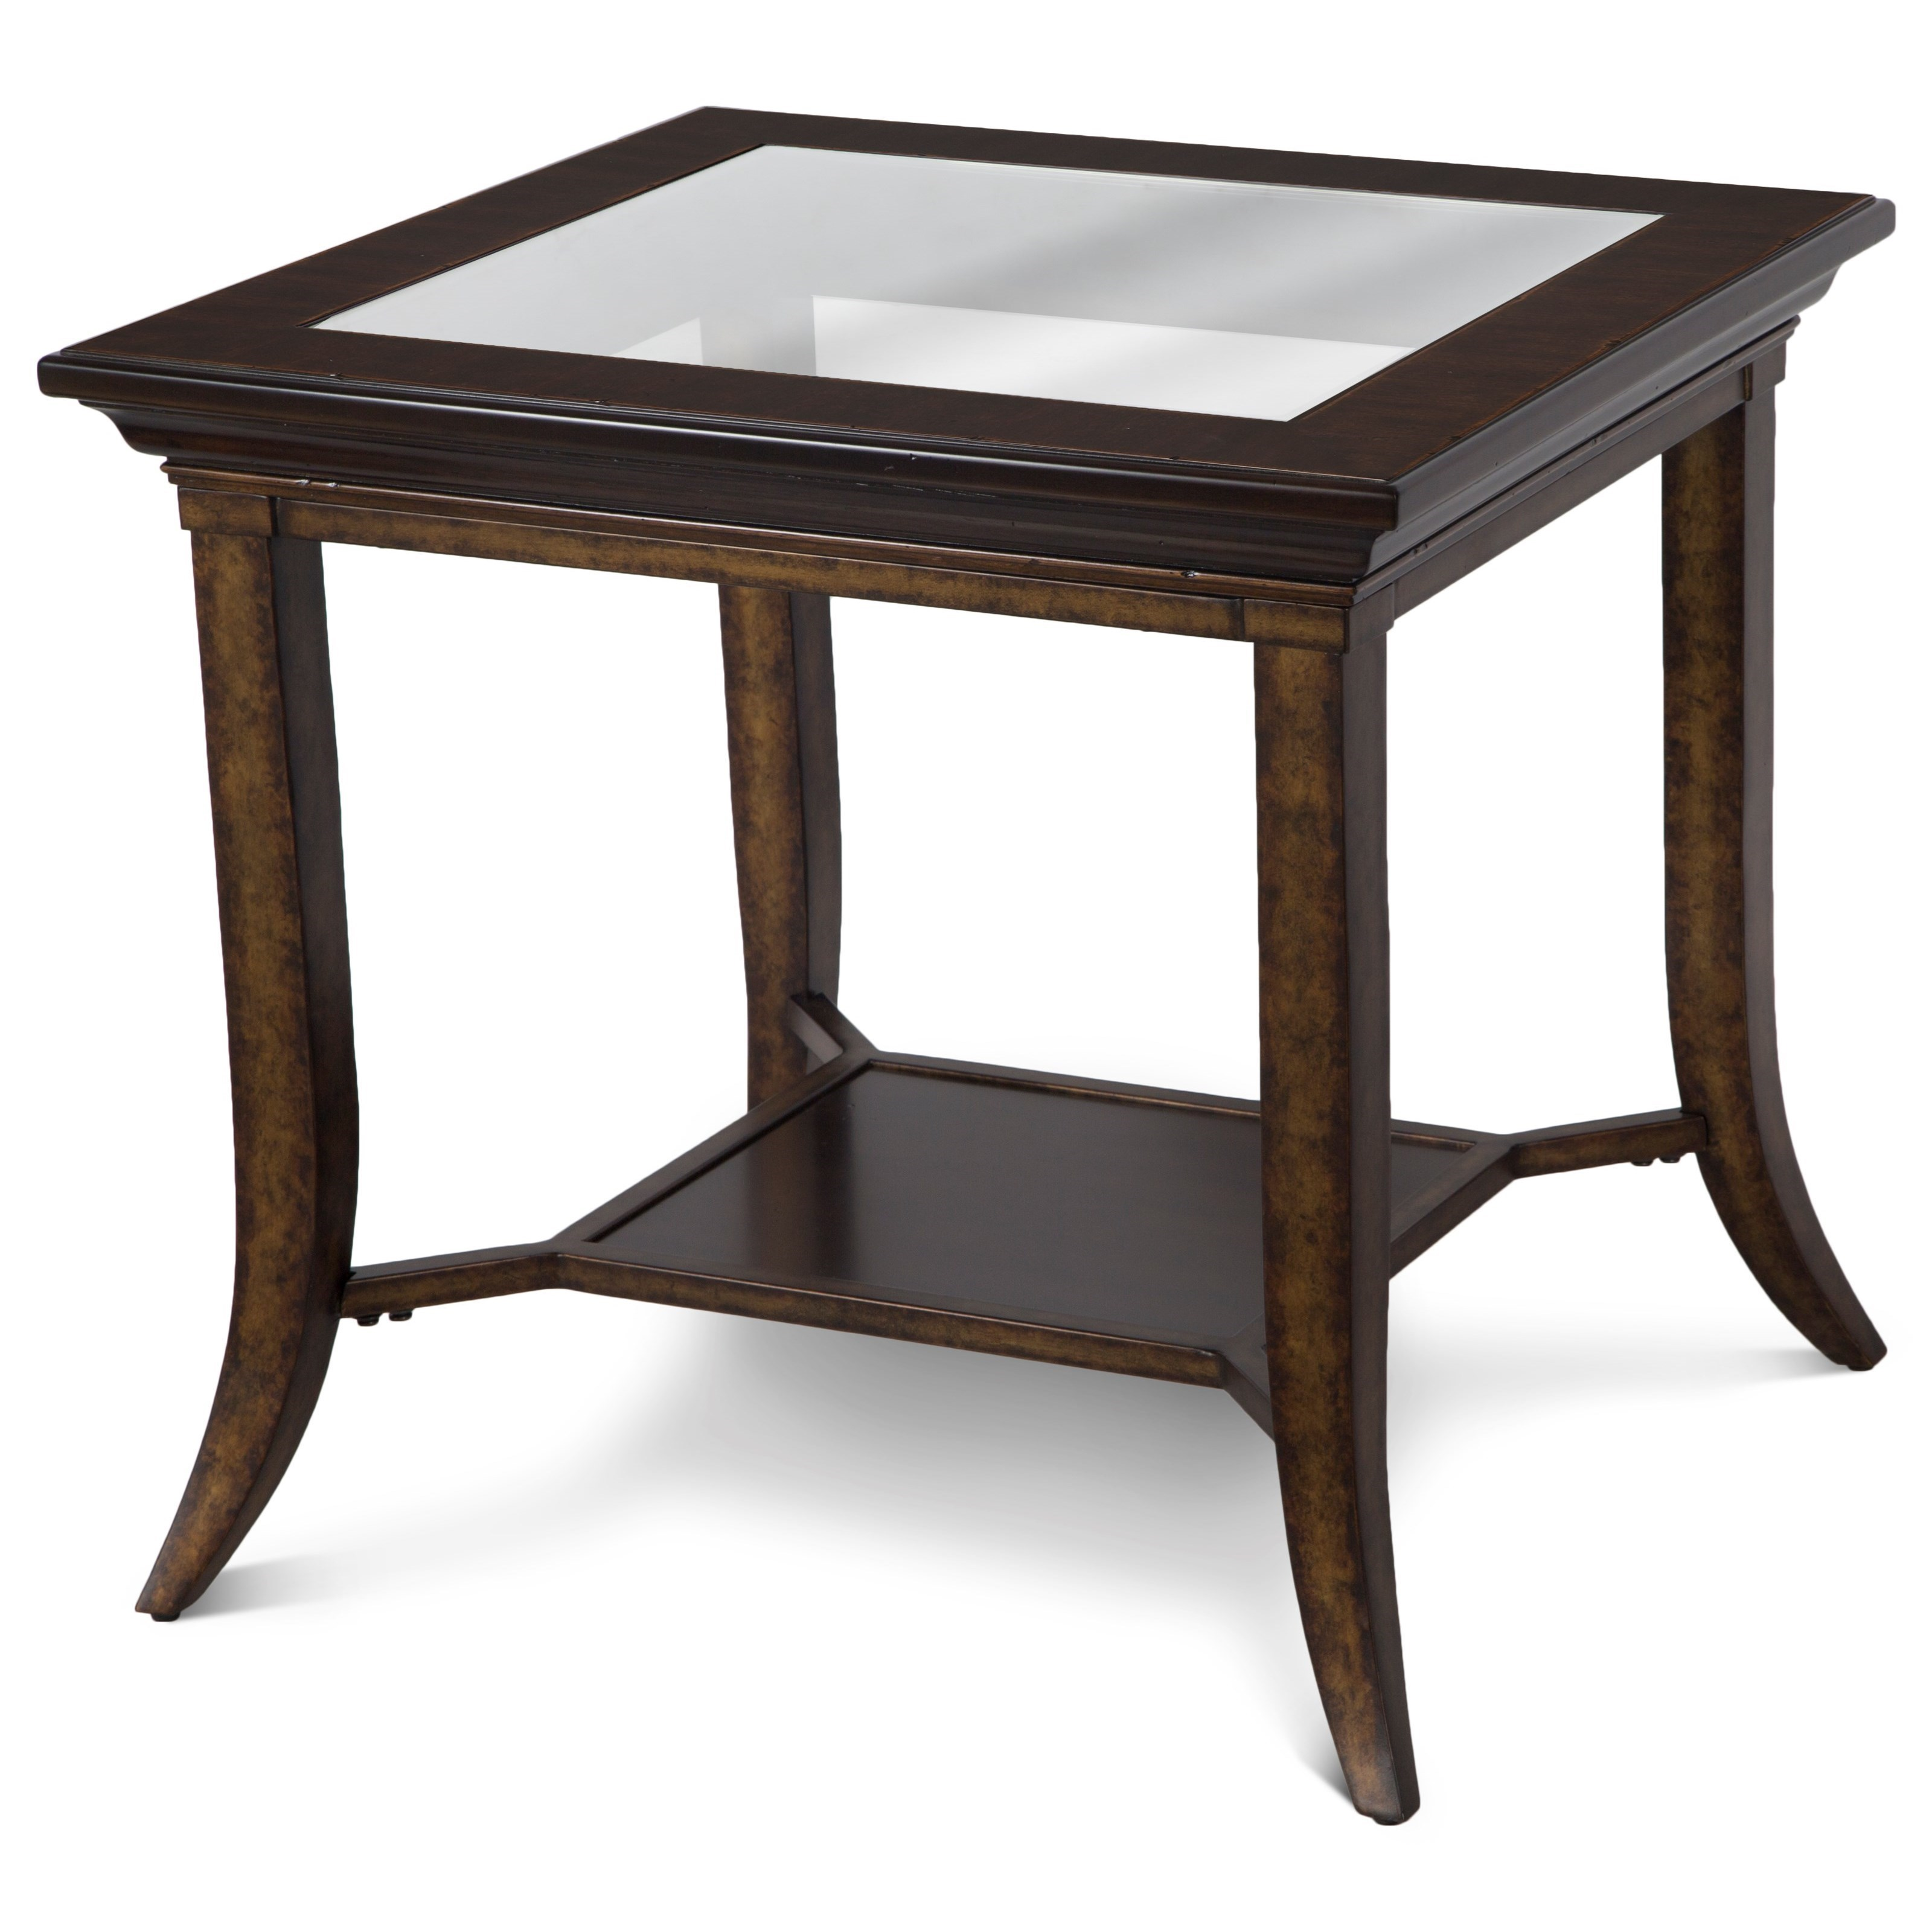 Magnussen Home Parsons Rectangular End Table With Glass Top